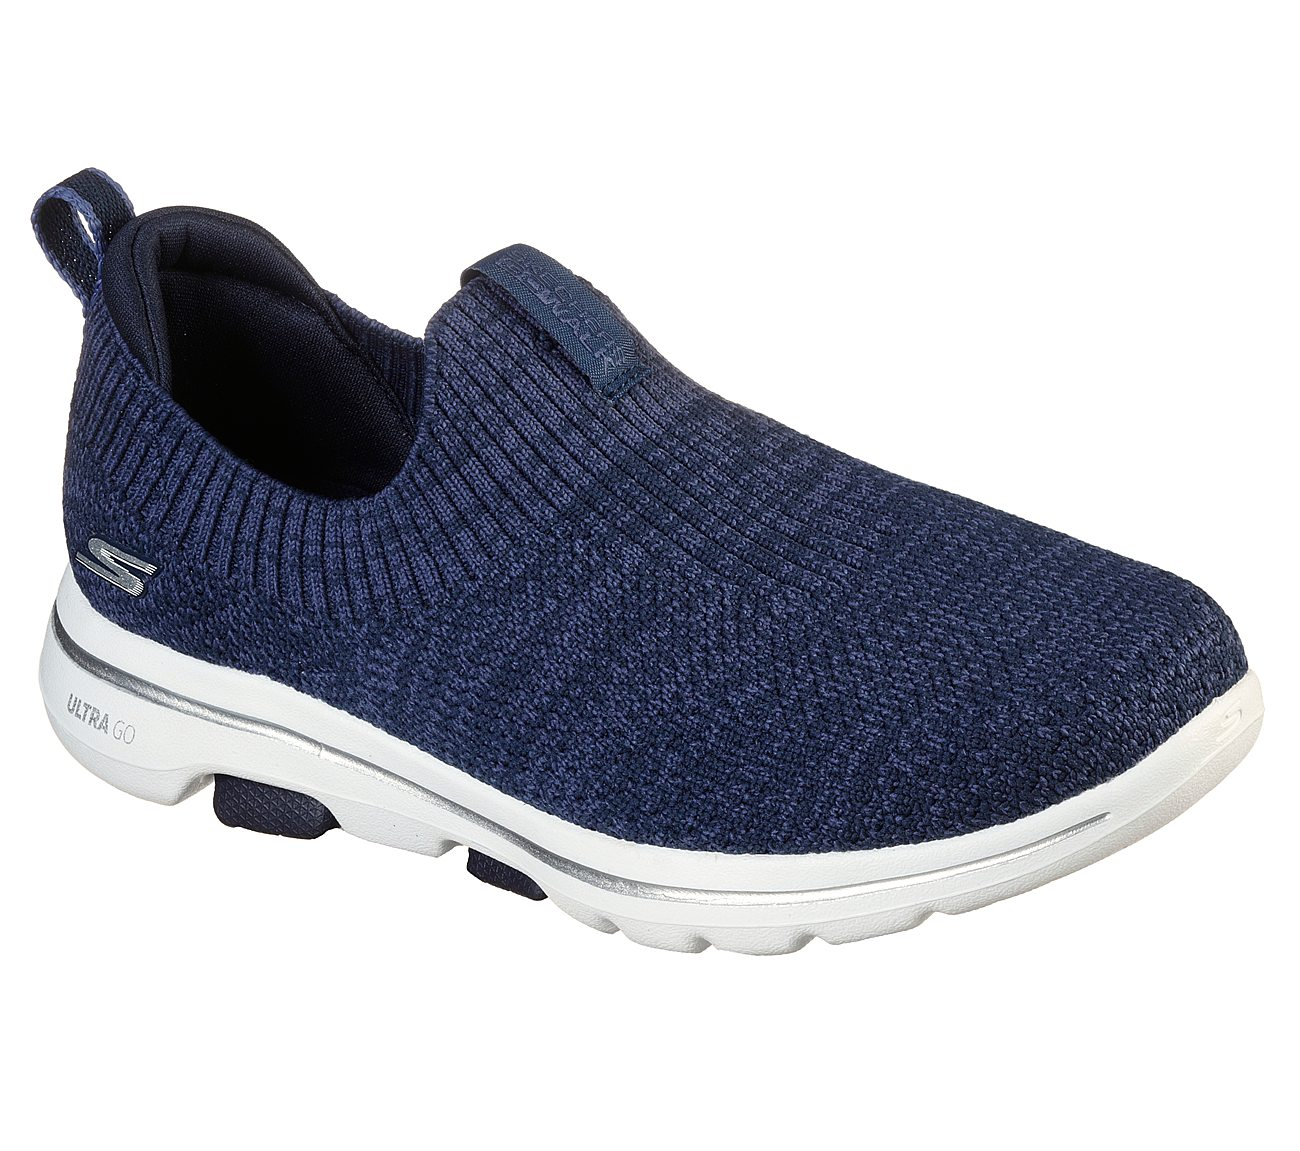 Skechers GOwalk 5 - Trendy